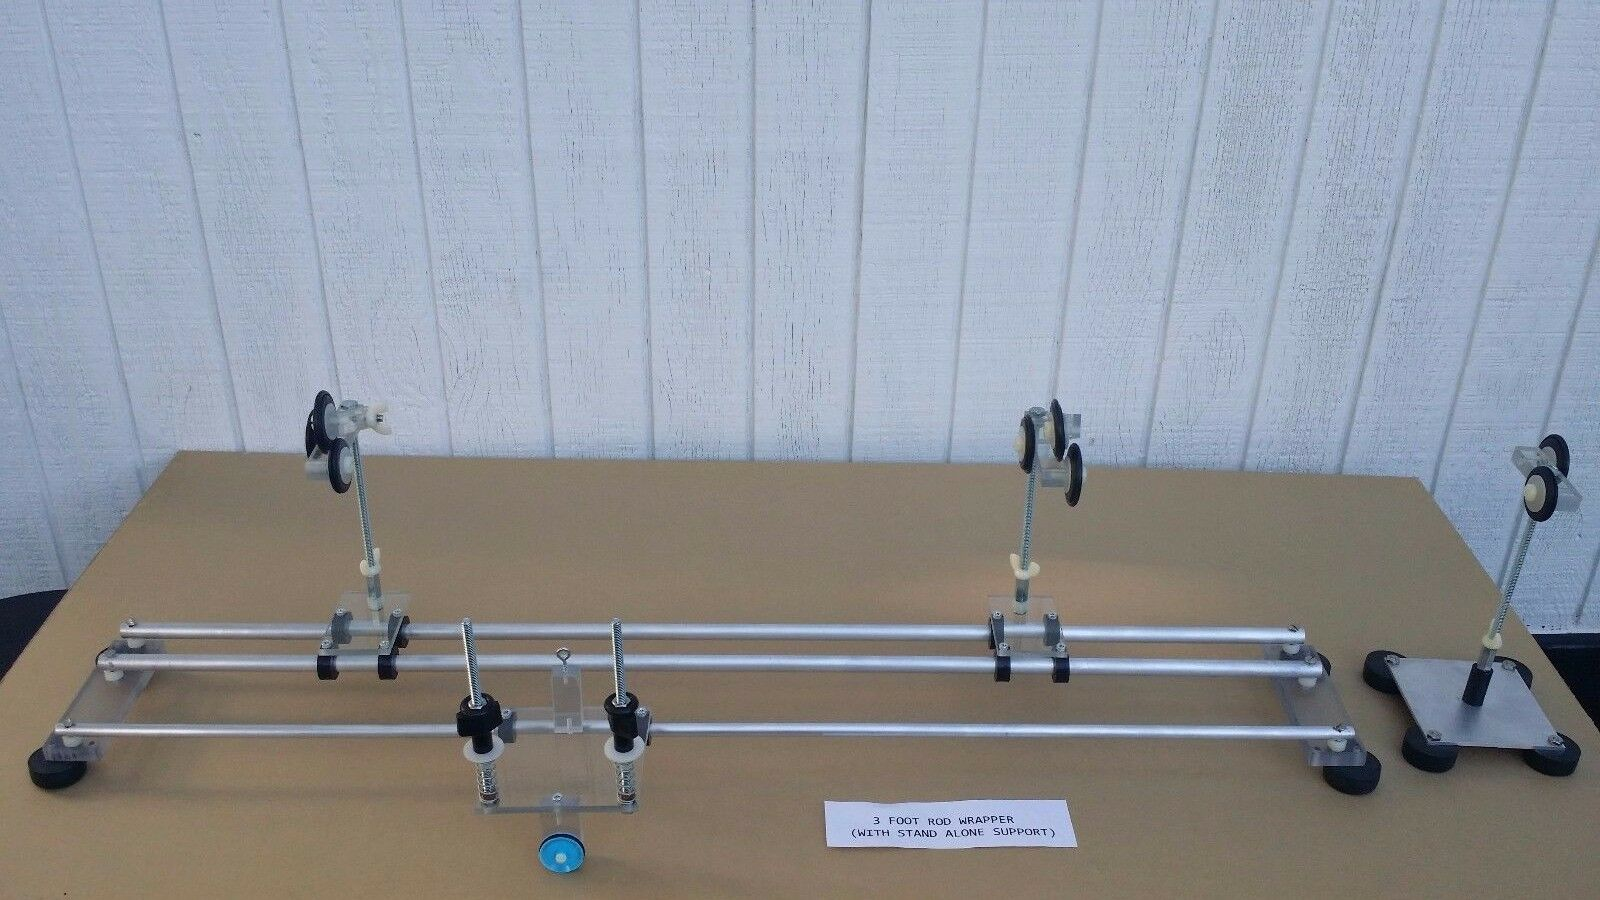 Aluminum fishing rod wrapper 3ft base w stand alone support winding very nice